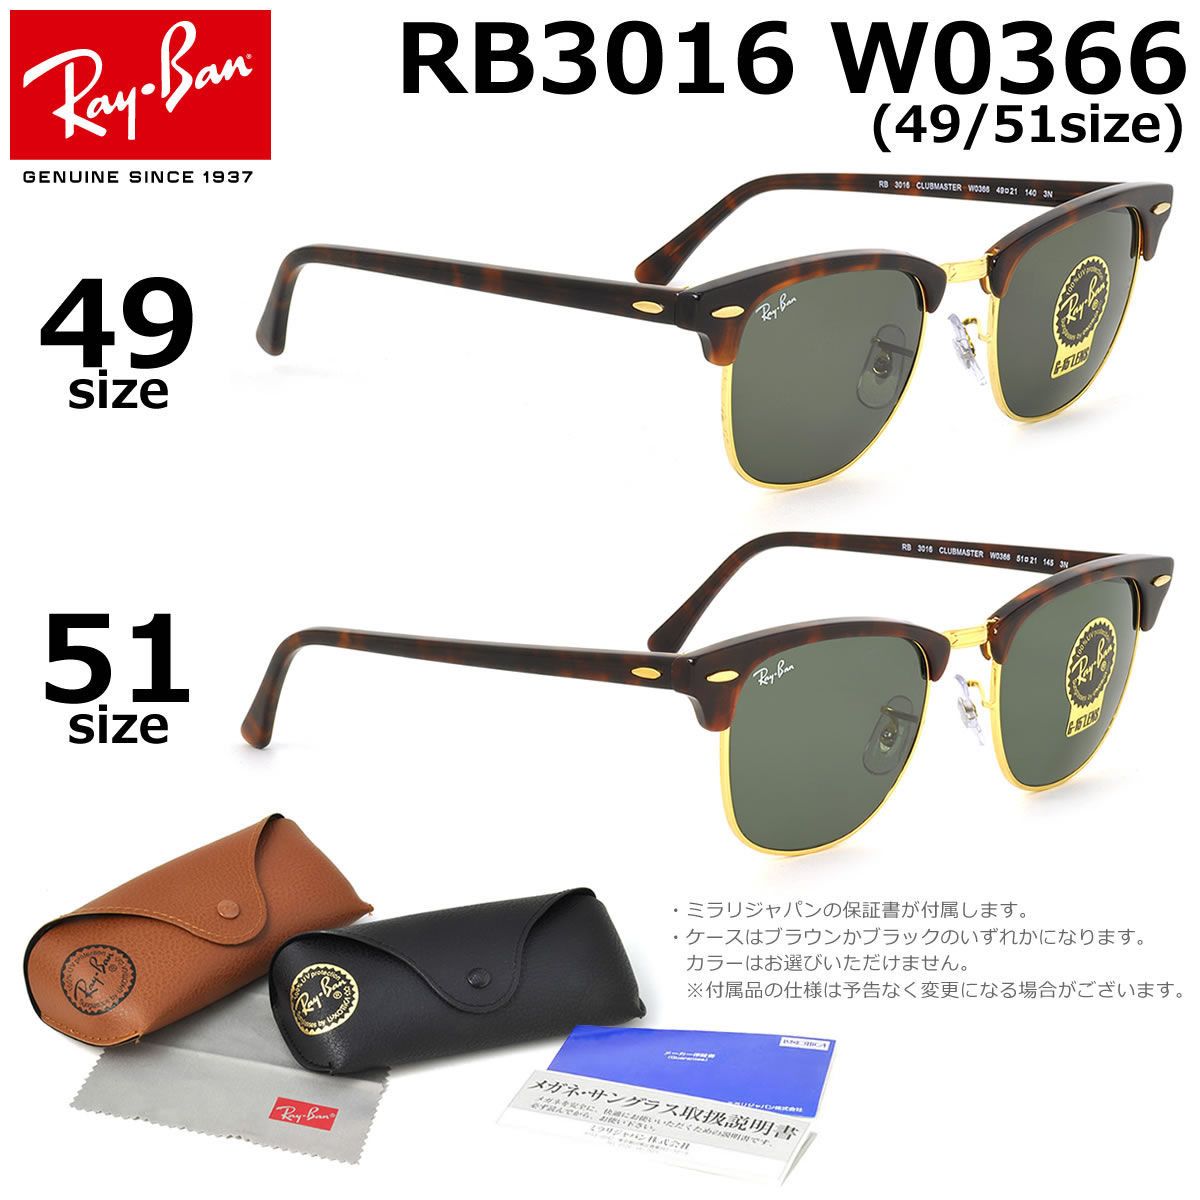 Ray-Ban Sunglasses RB3016 W0366 multiple sizes available CLUBMASTER GENUINE  NEW rayban ray ban